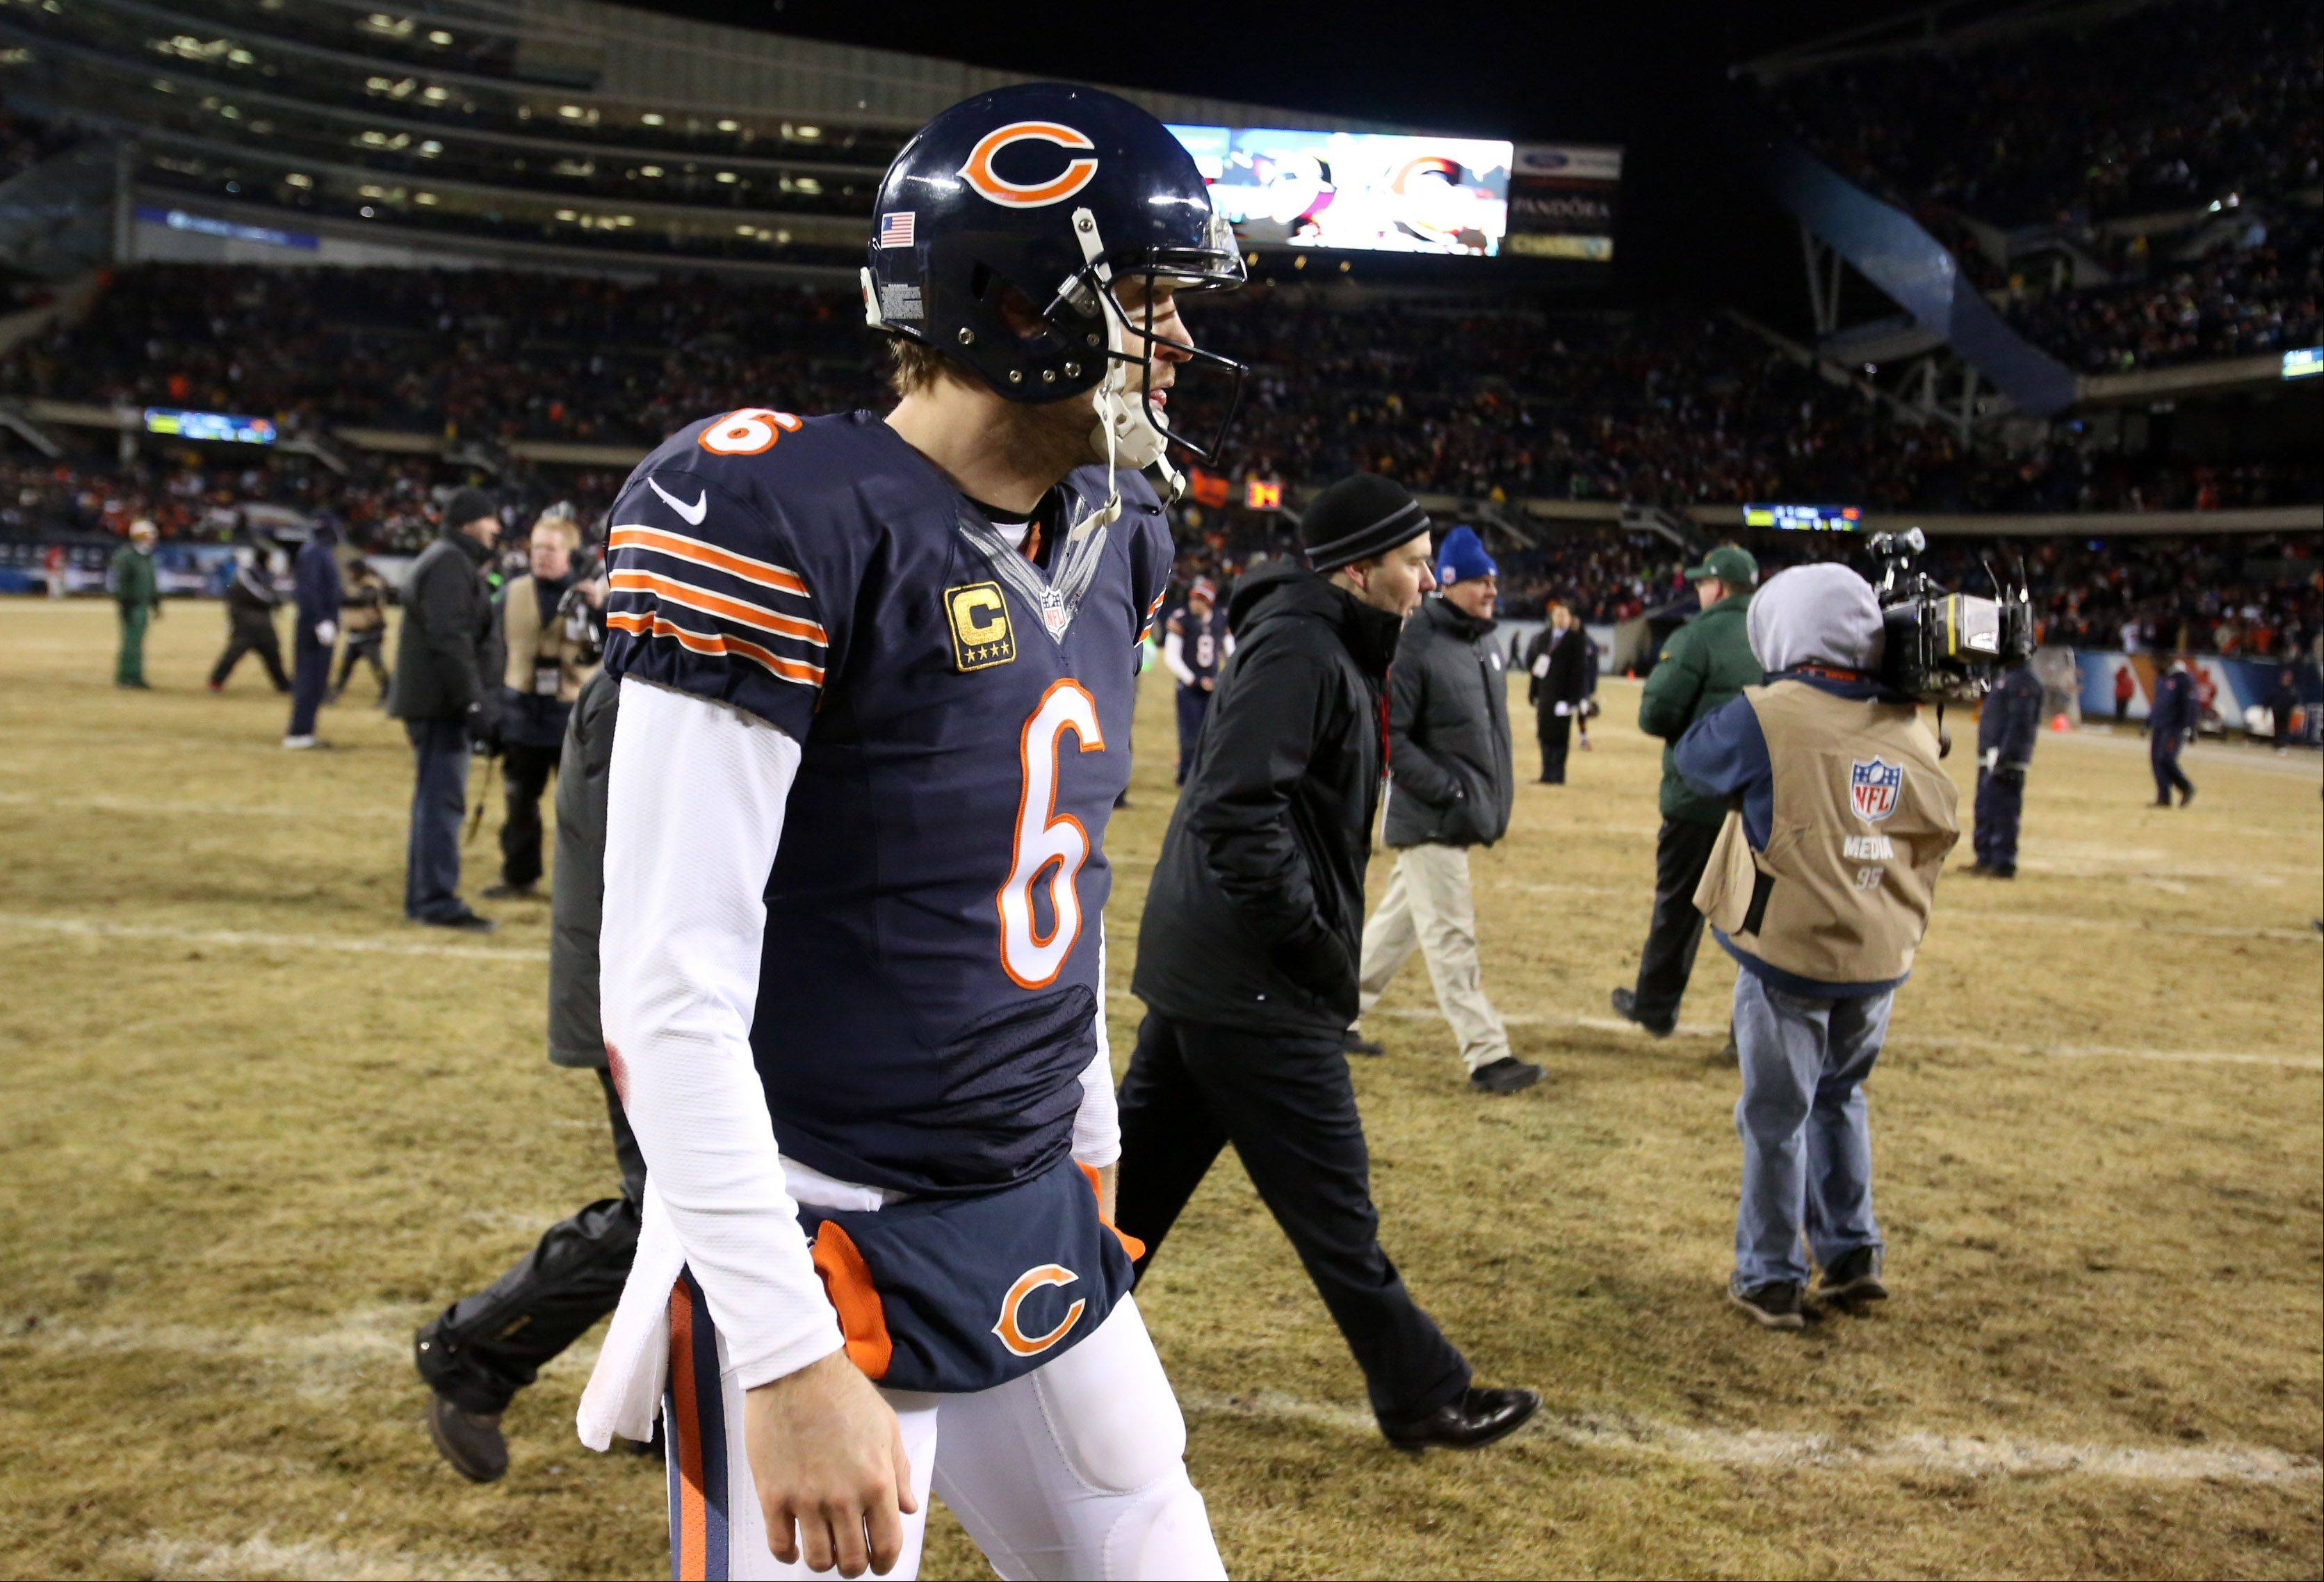 Bears quarterback Jay Cutler walks off the field after losing to the Green Bay Packers 33-28 on Sunday at Soldier Field.